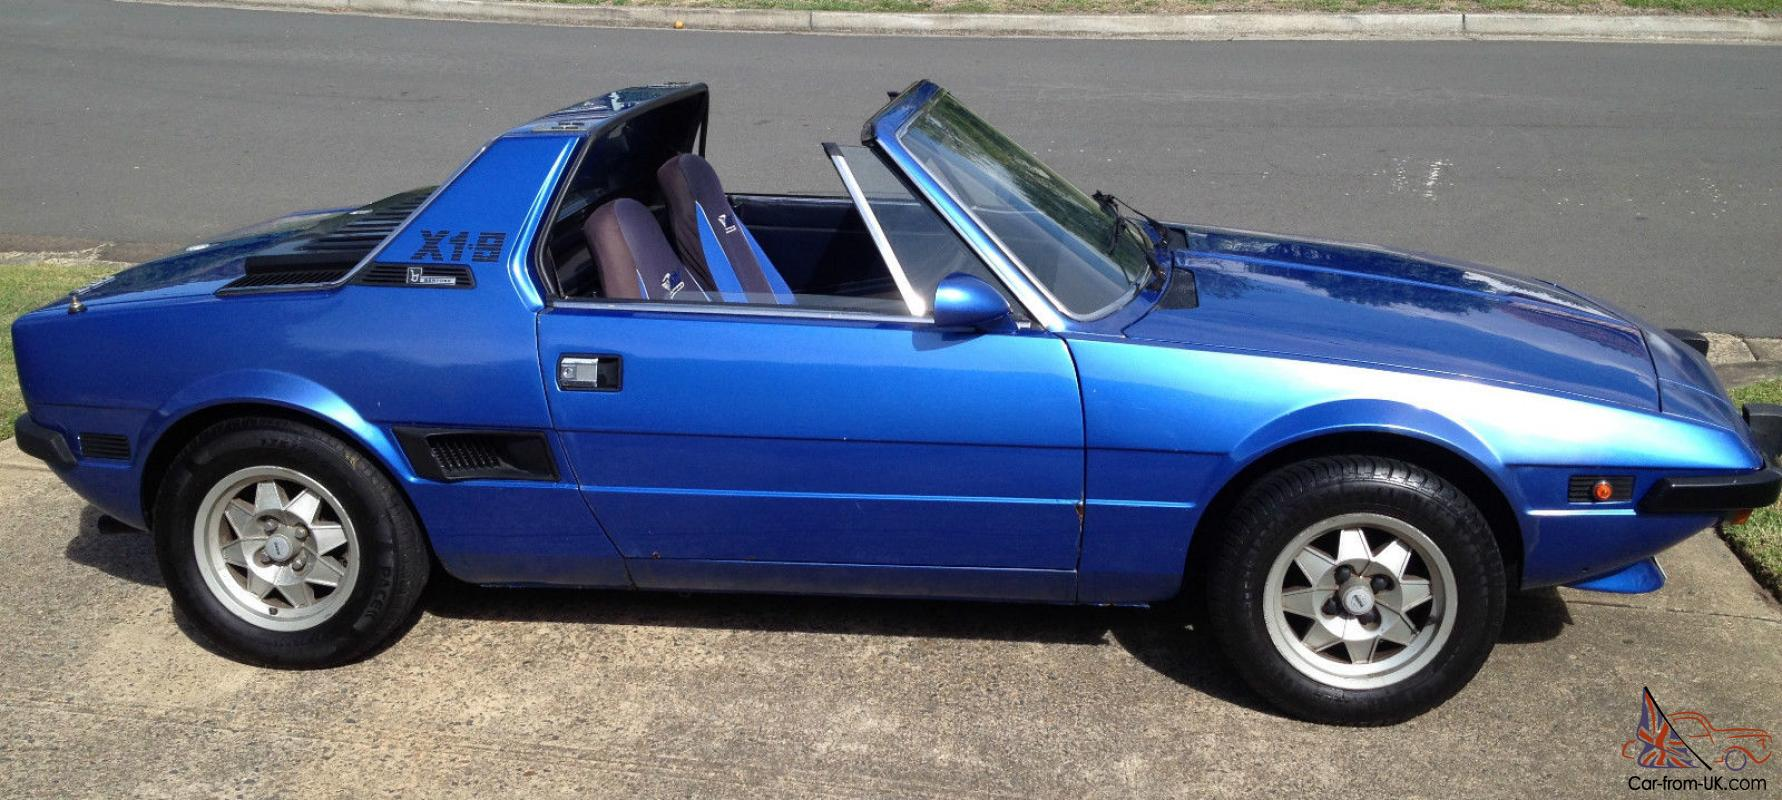 fiat co schmitt std classiccars sale missouri of daniel offered c cc listings st com in for louis view large picture by